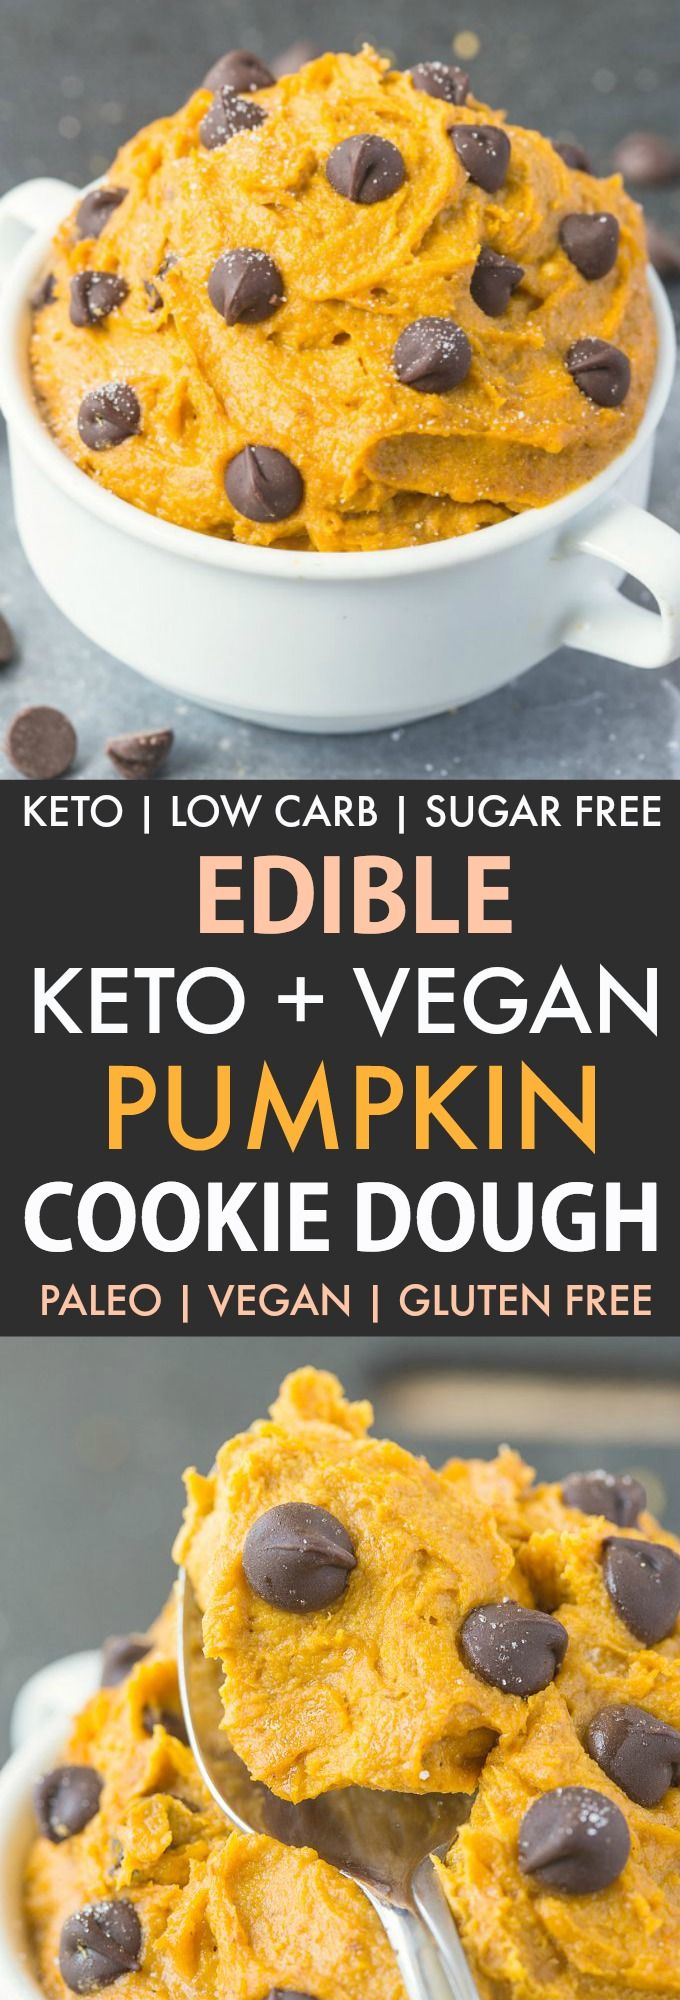 Healthy Paleo Vegan Pumpkin Cookie Dough (Keto, Sugar Free, Low Carb)- Flourless eggless edible cookie dough loaded with pumpkin- It's smooth, creamy and packed with protein! #cookiedough #egglesscookiedough #pumpkin #ketodessert #vegandessert | Recipe on thebigmansworld.com #healthycookiedough